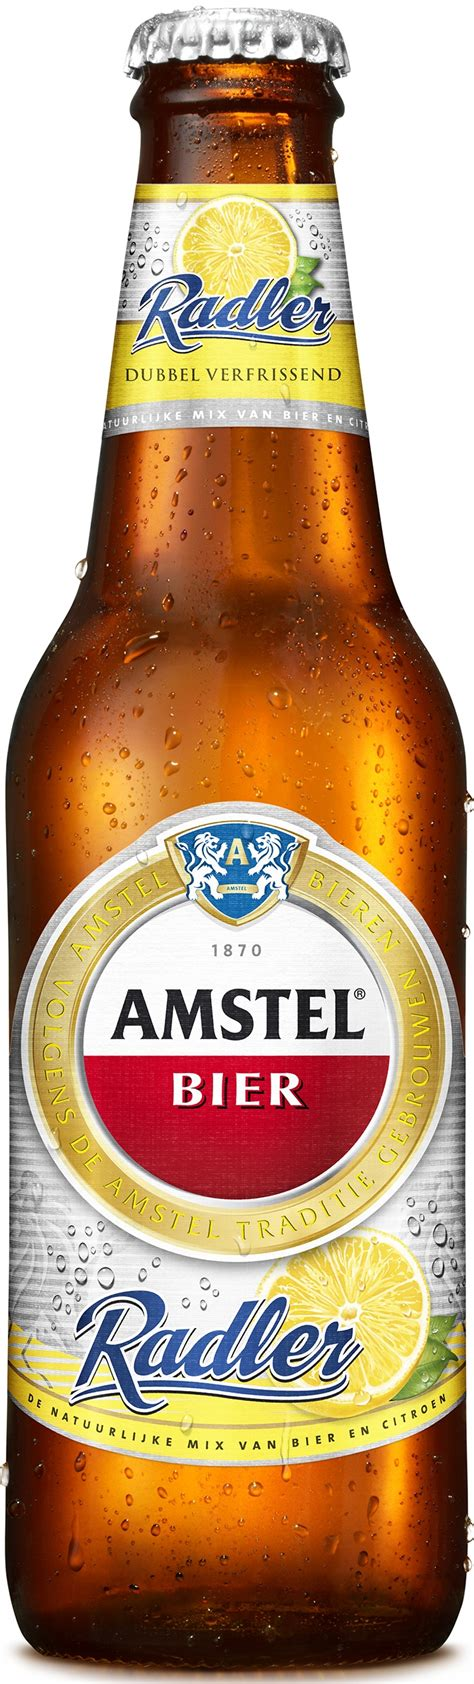 amstel light alcohol content amstel light alcohol content amstel light alcohol content